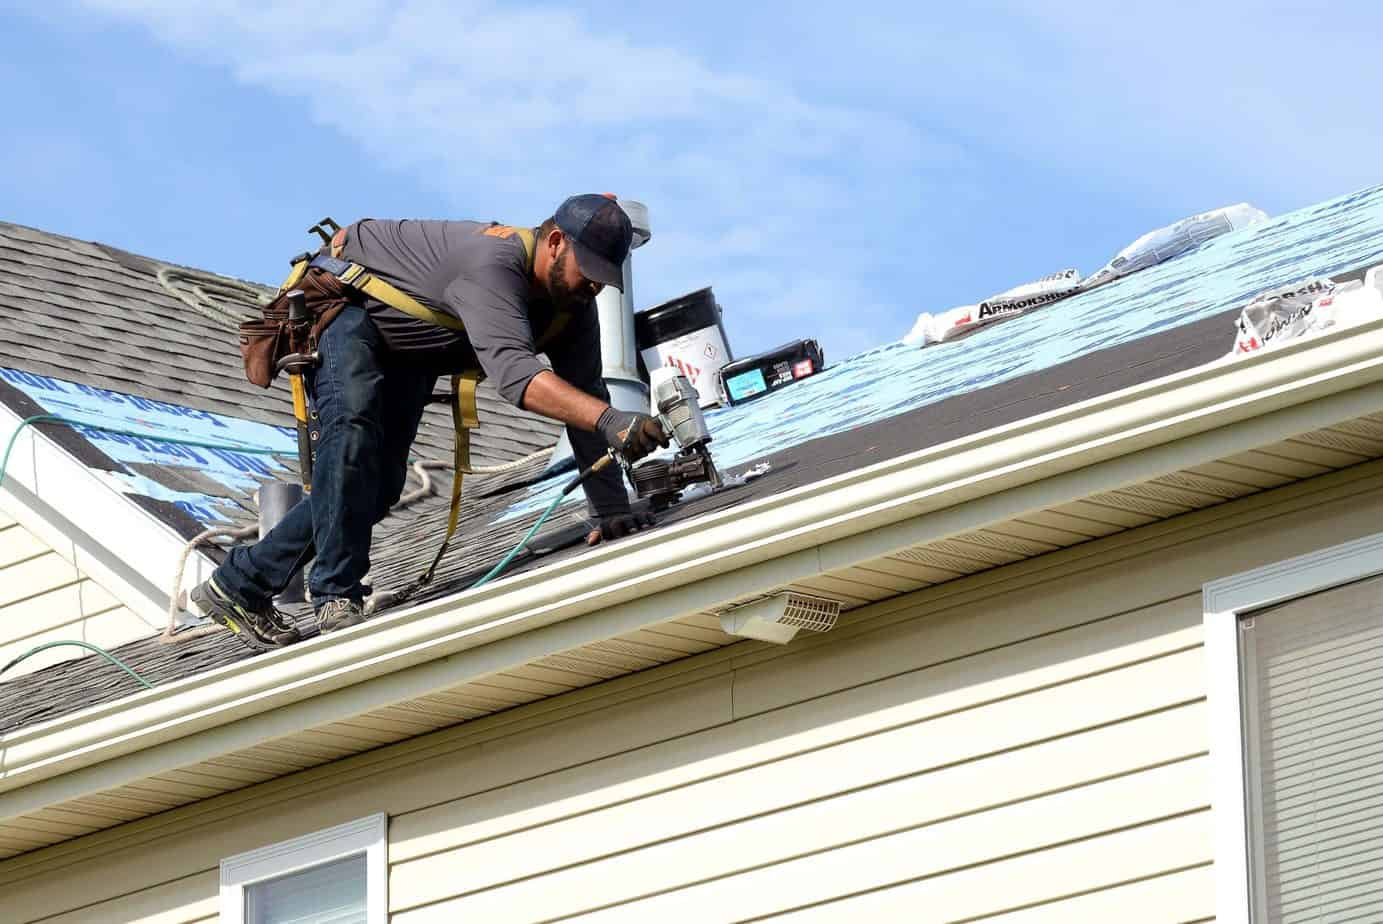 Are Roof Ridge Vents Necessary? - A Man Working on a Roof Installation with Tools Sitting on the Roof